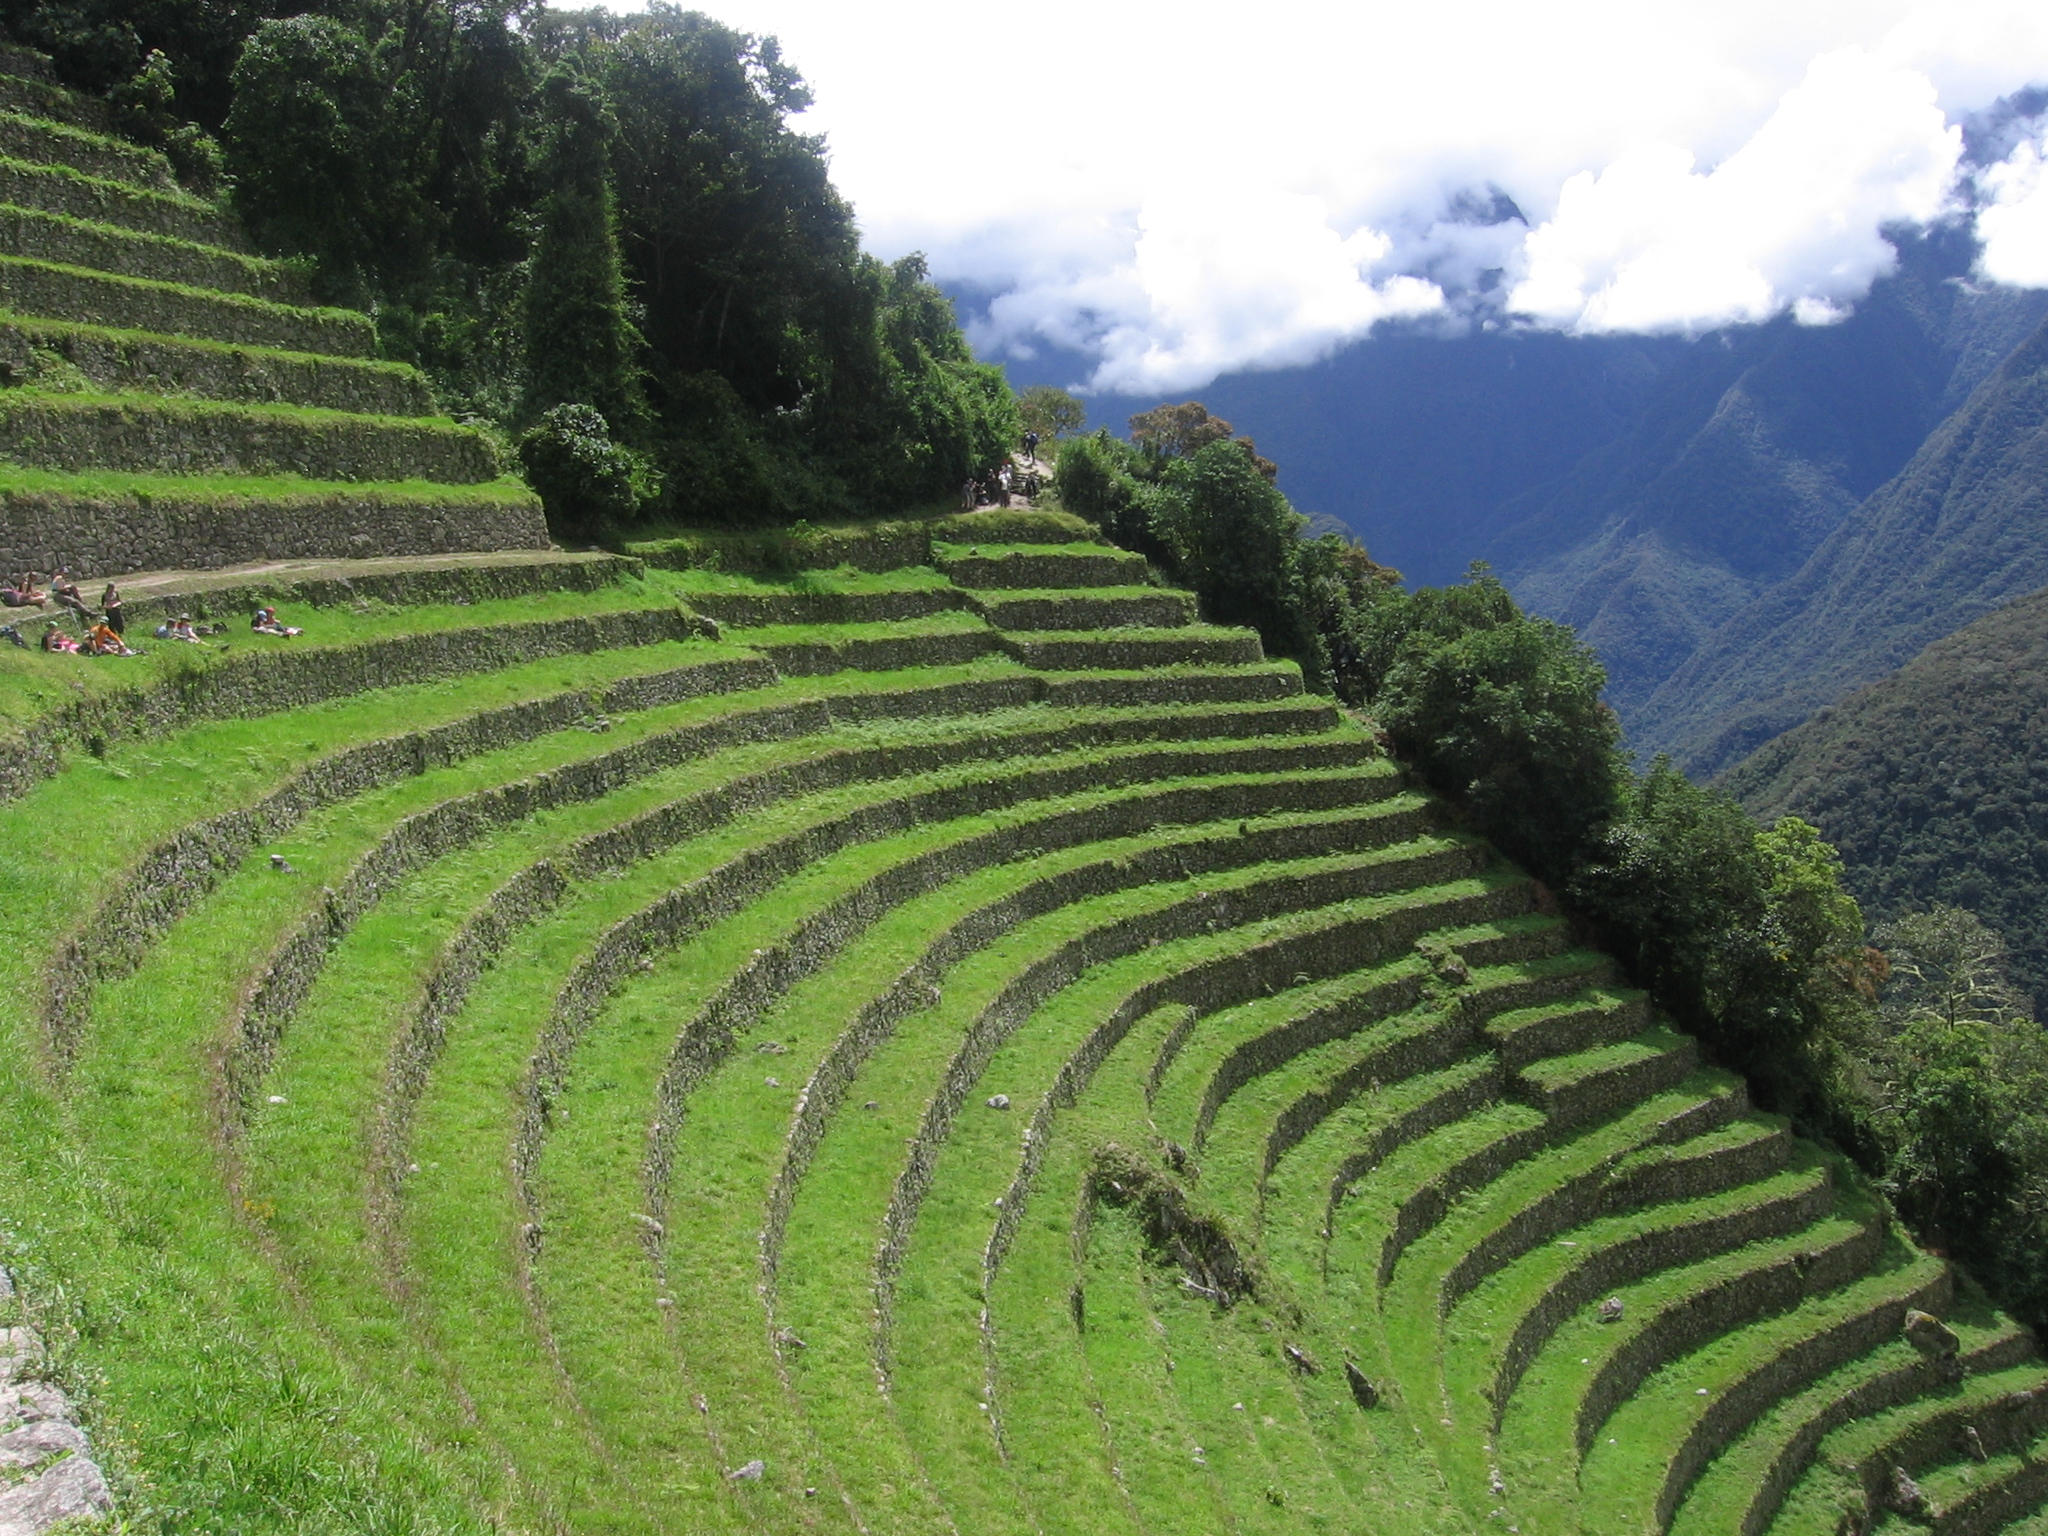 peru   inka trail green garden by starbuck88 on DeviantArt